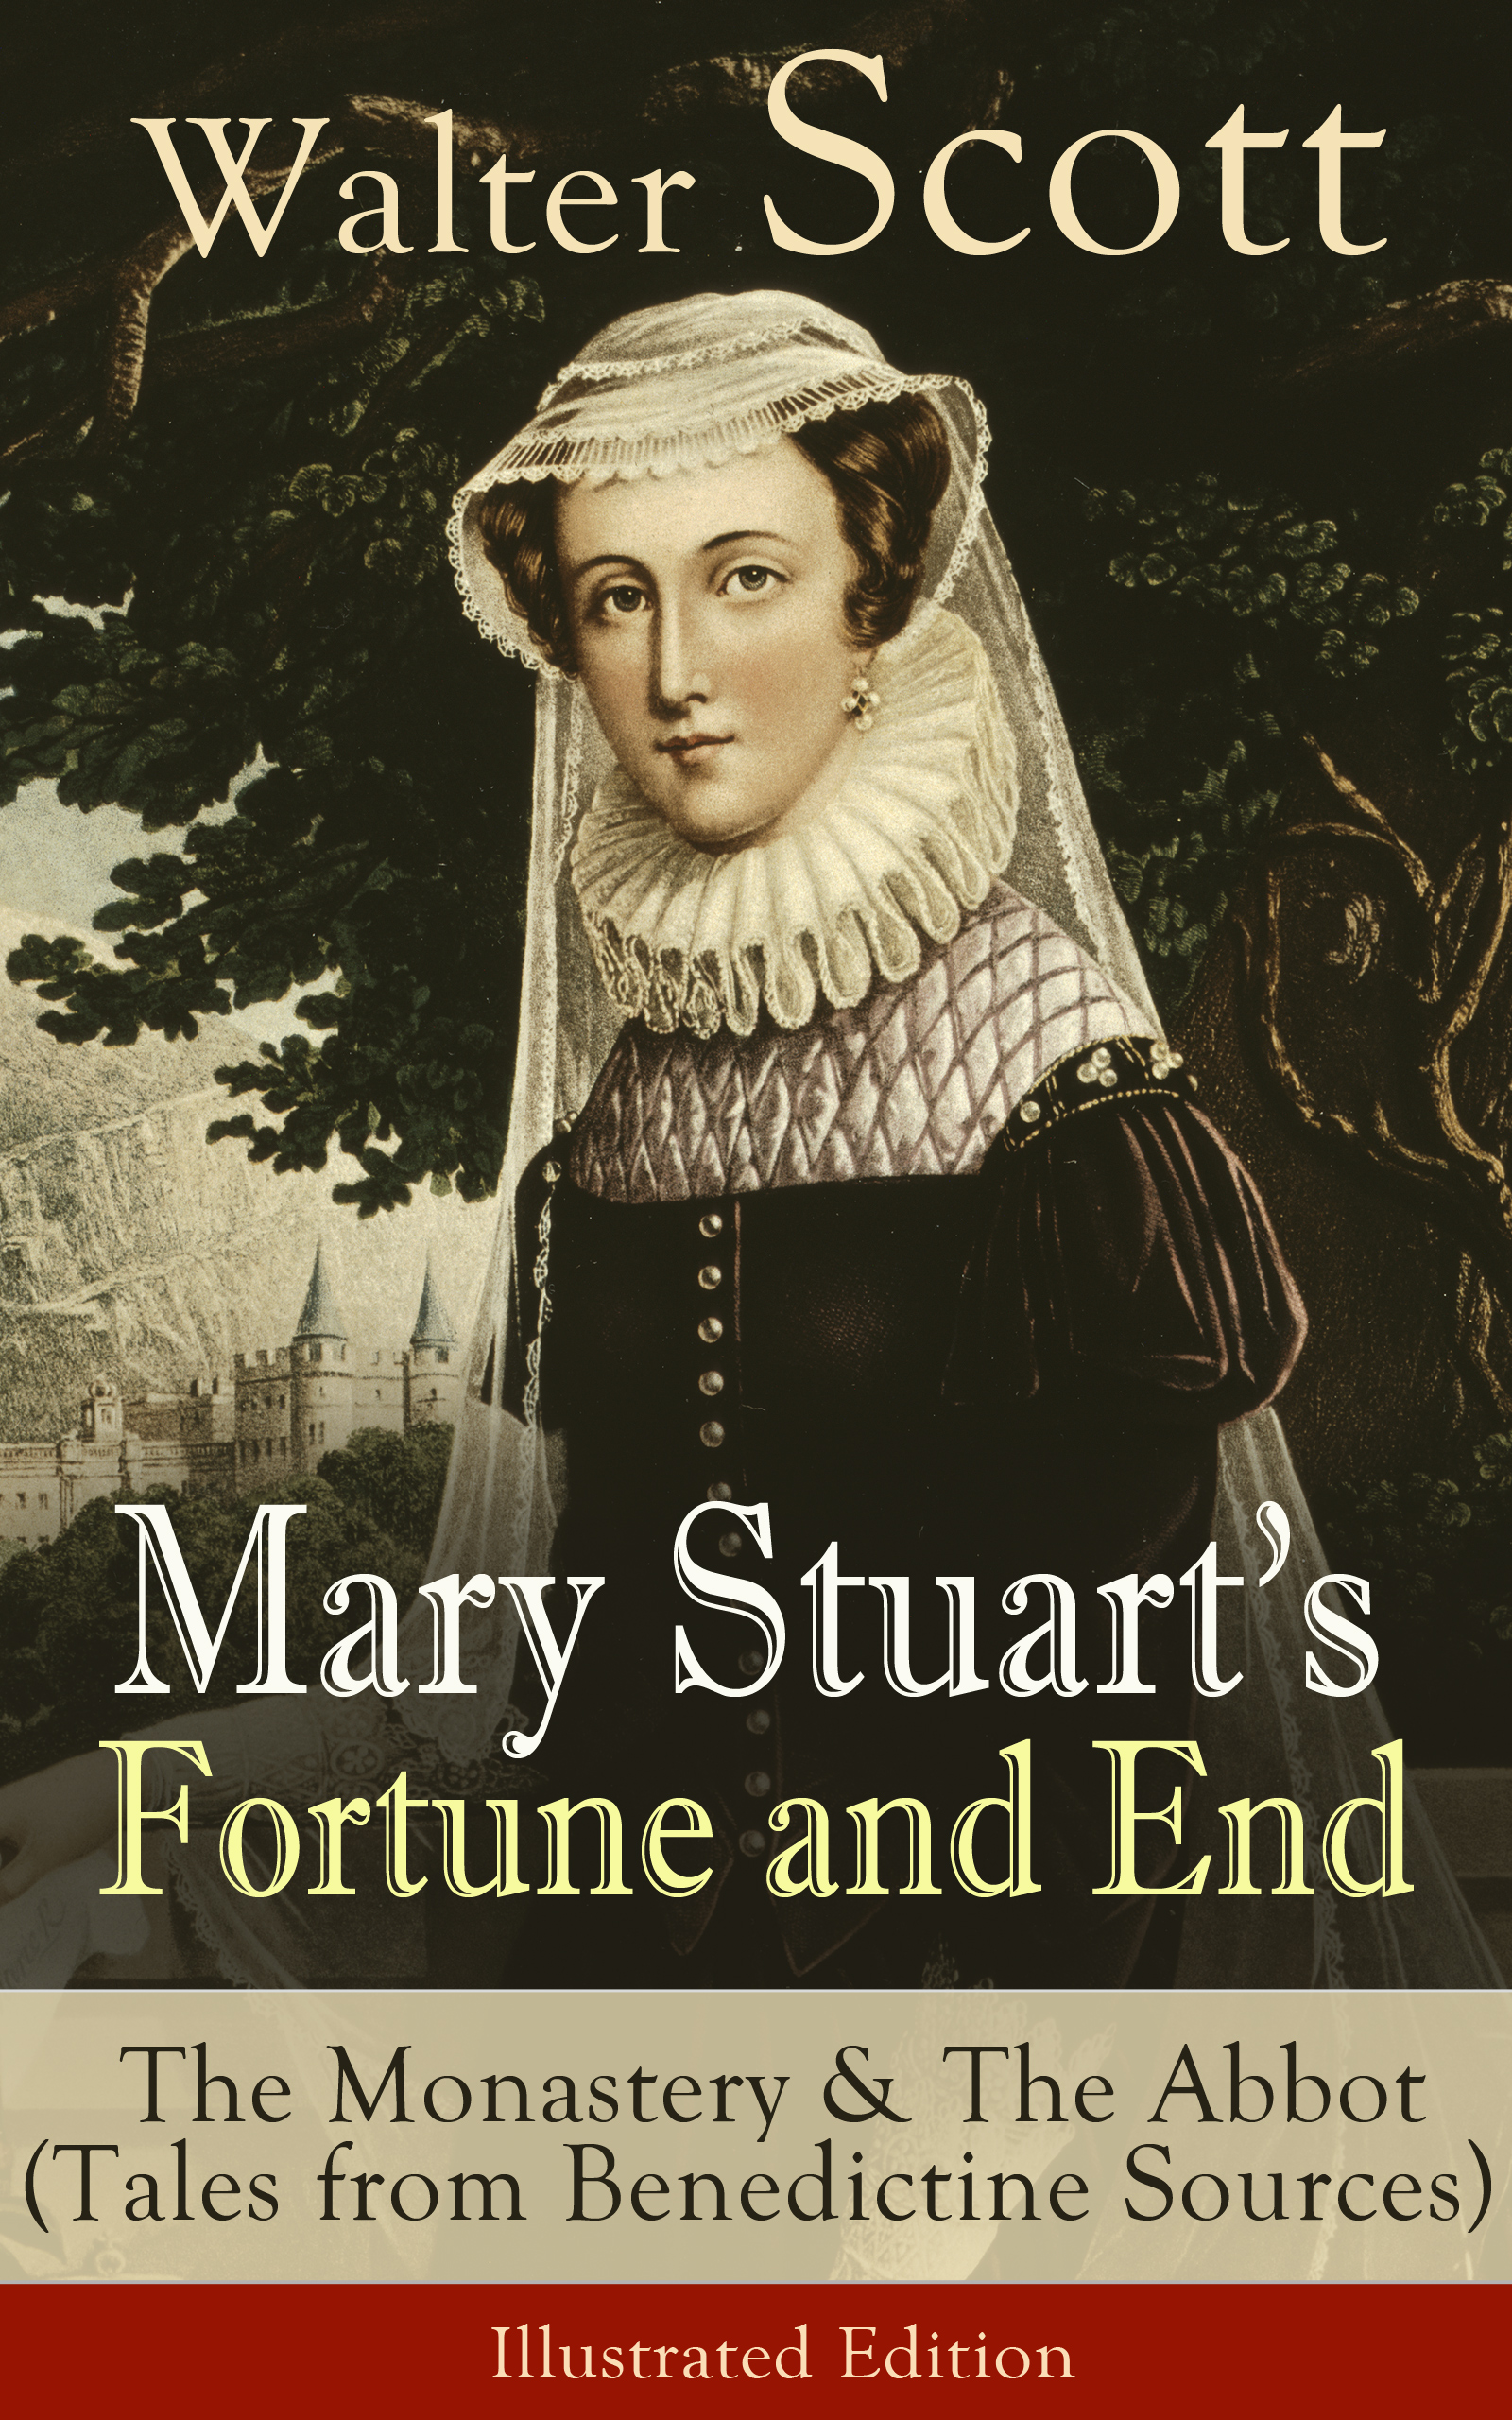 Walter Scott Mary Stuart's Fortune and End: The Monastery & The Abbot (Tales from Benedictine Sources) - Illustrated Edition scott w the abbot